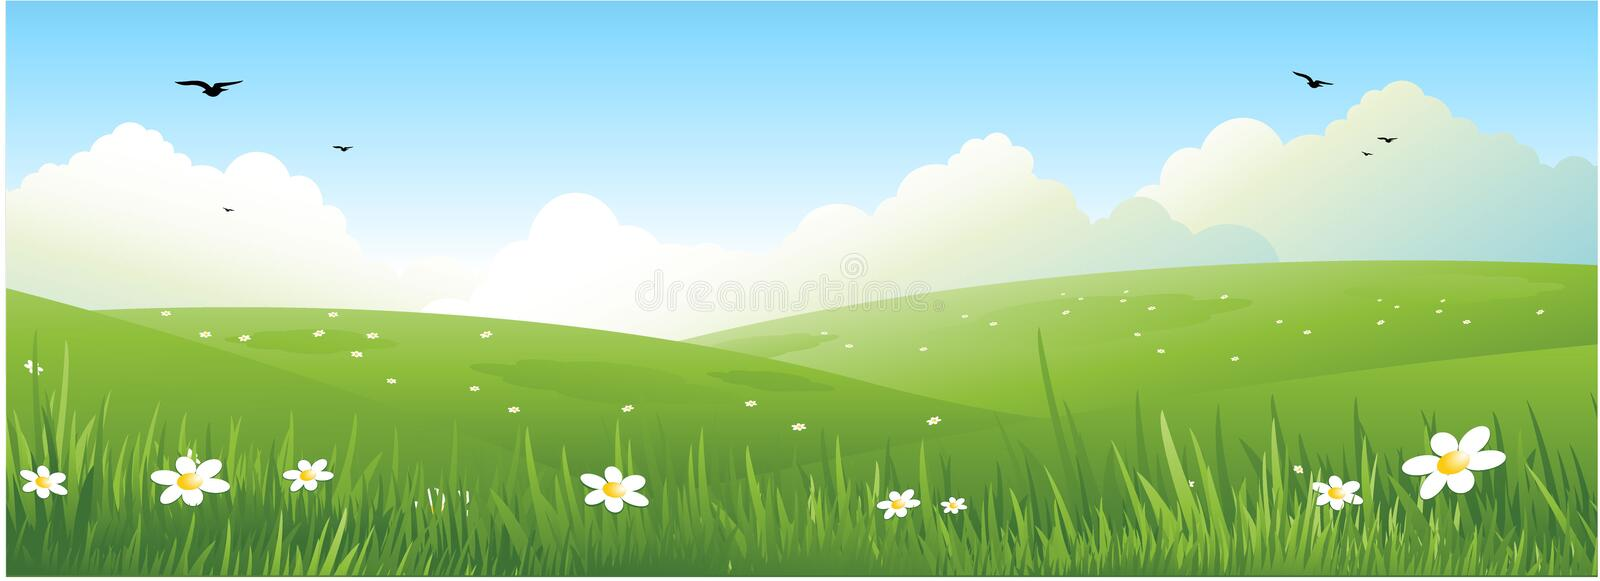 Nature landscape background royalty free stock images